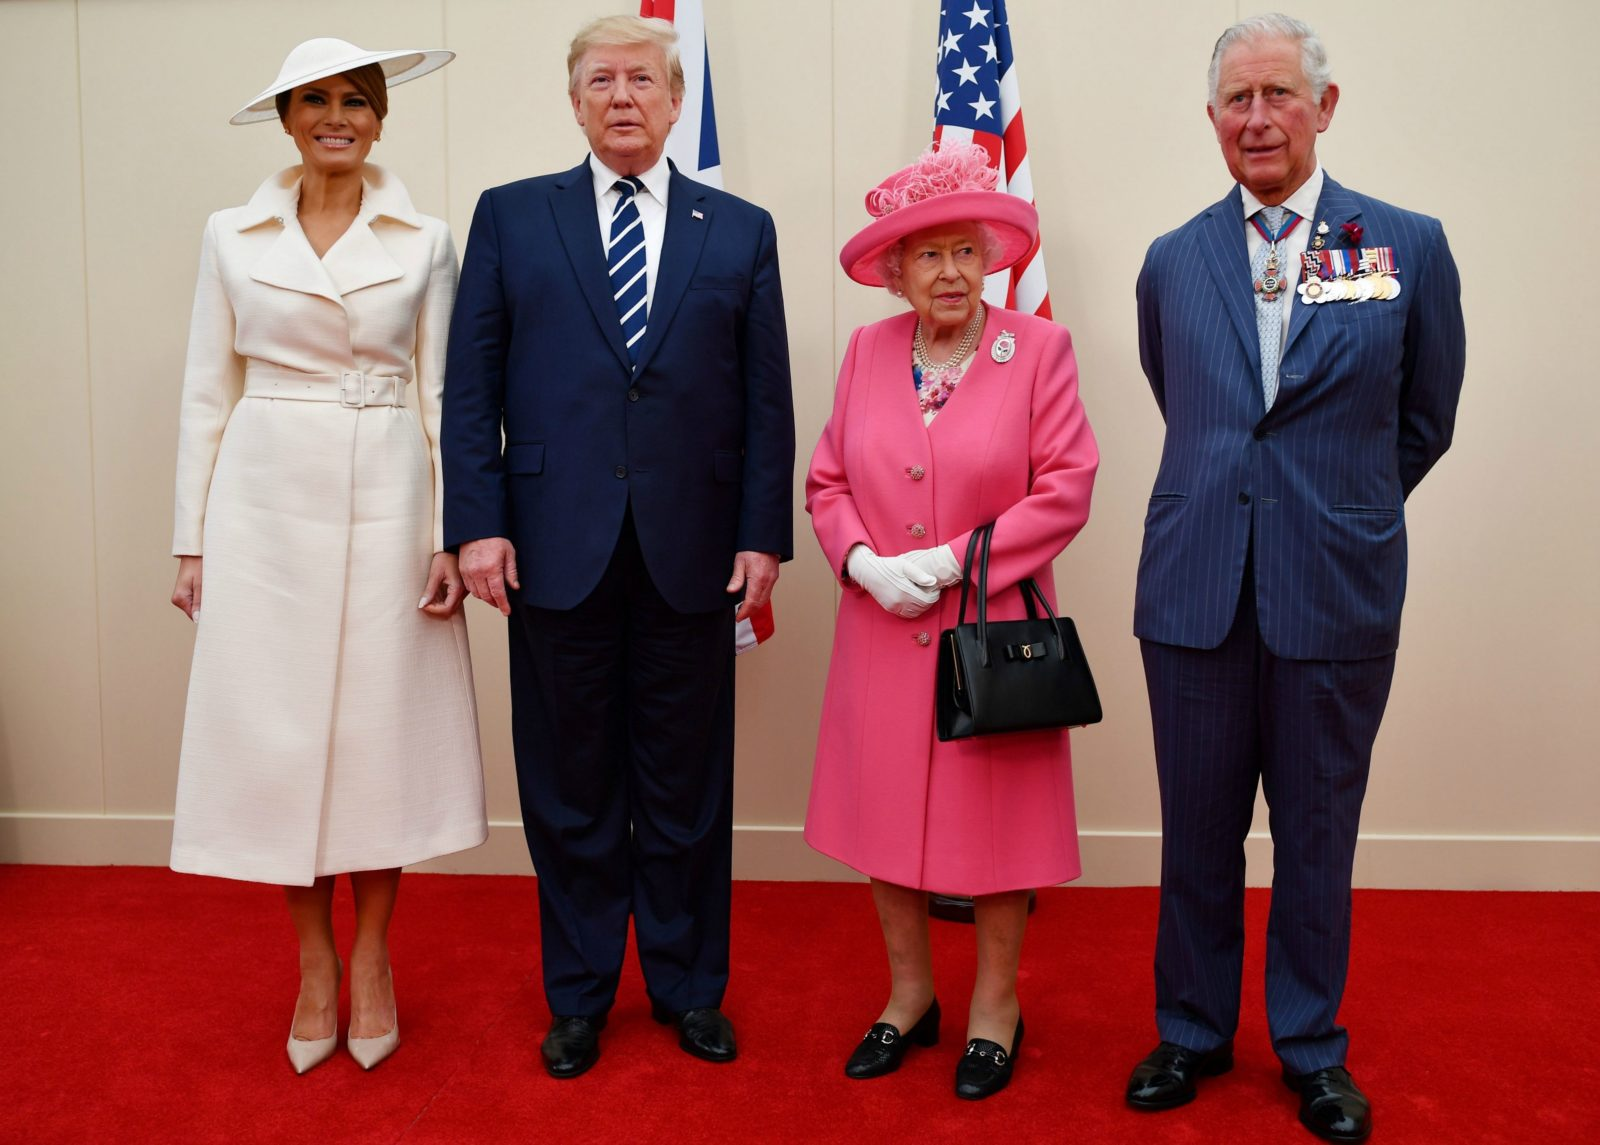 The Trumps joined the Queen and Prince Charles for the ceremony. Source: Getty.